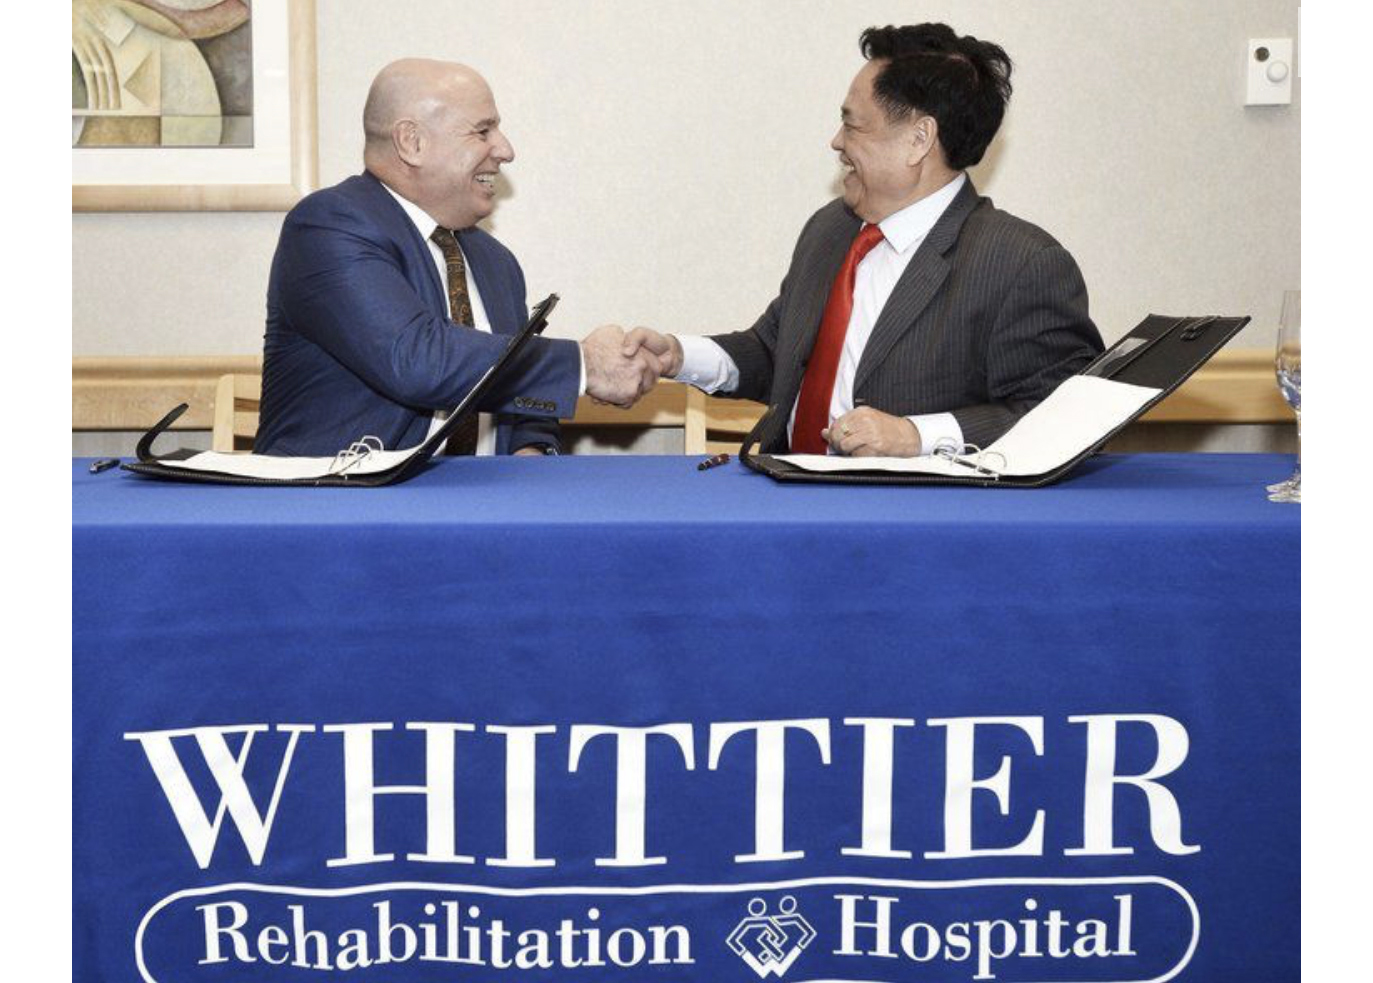 Whittier Health Network to partner with the Hainan Lecheng Investment Company Ltd. to bring first-class, patient-centered rehabilitation services to China